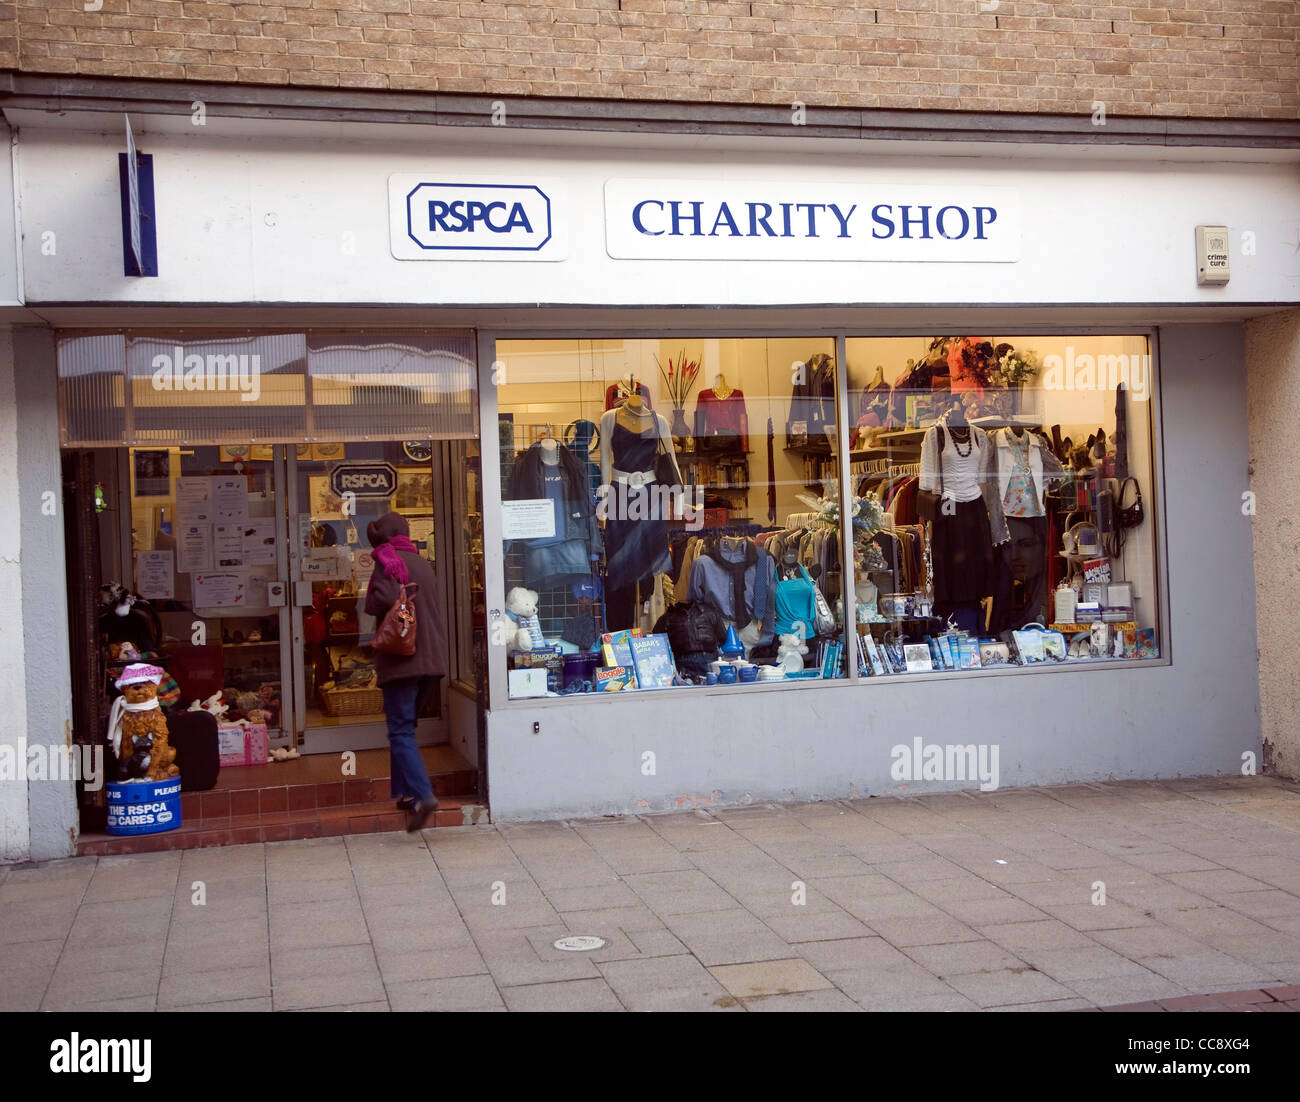 RSPCA charity shop - Stock Image